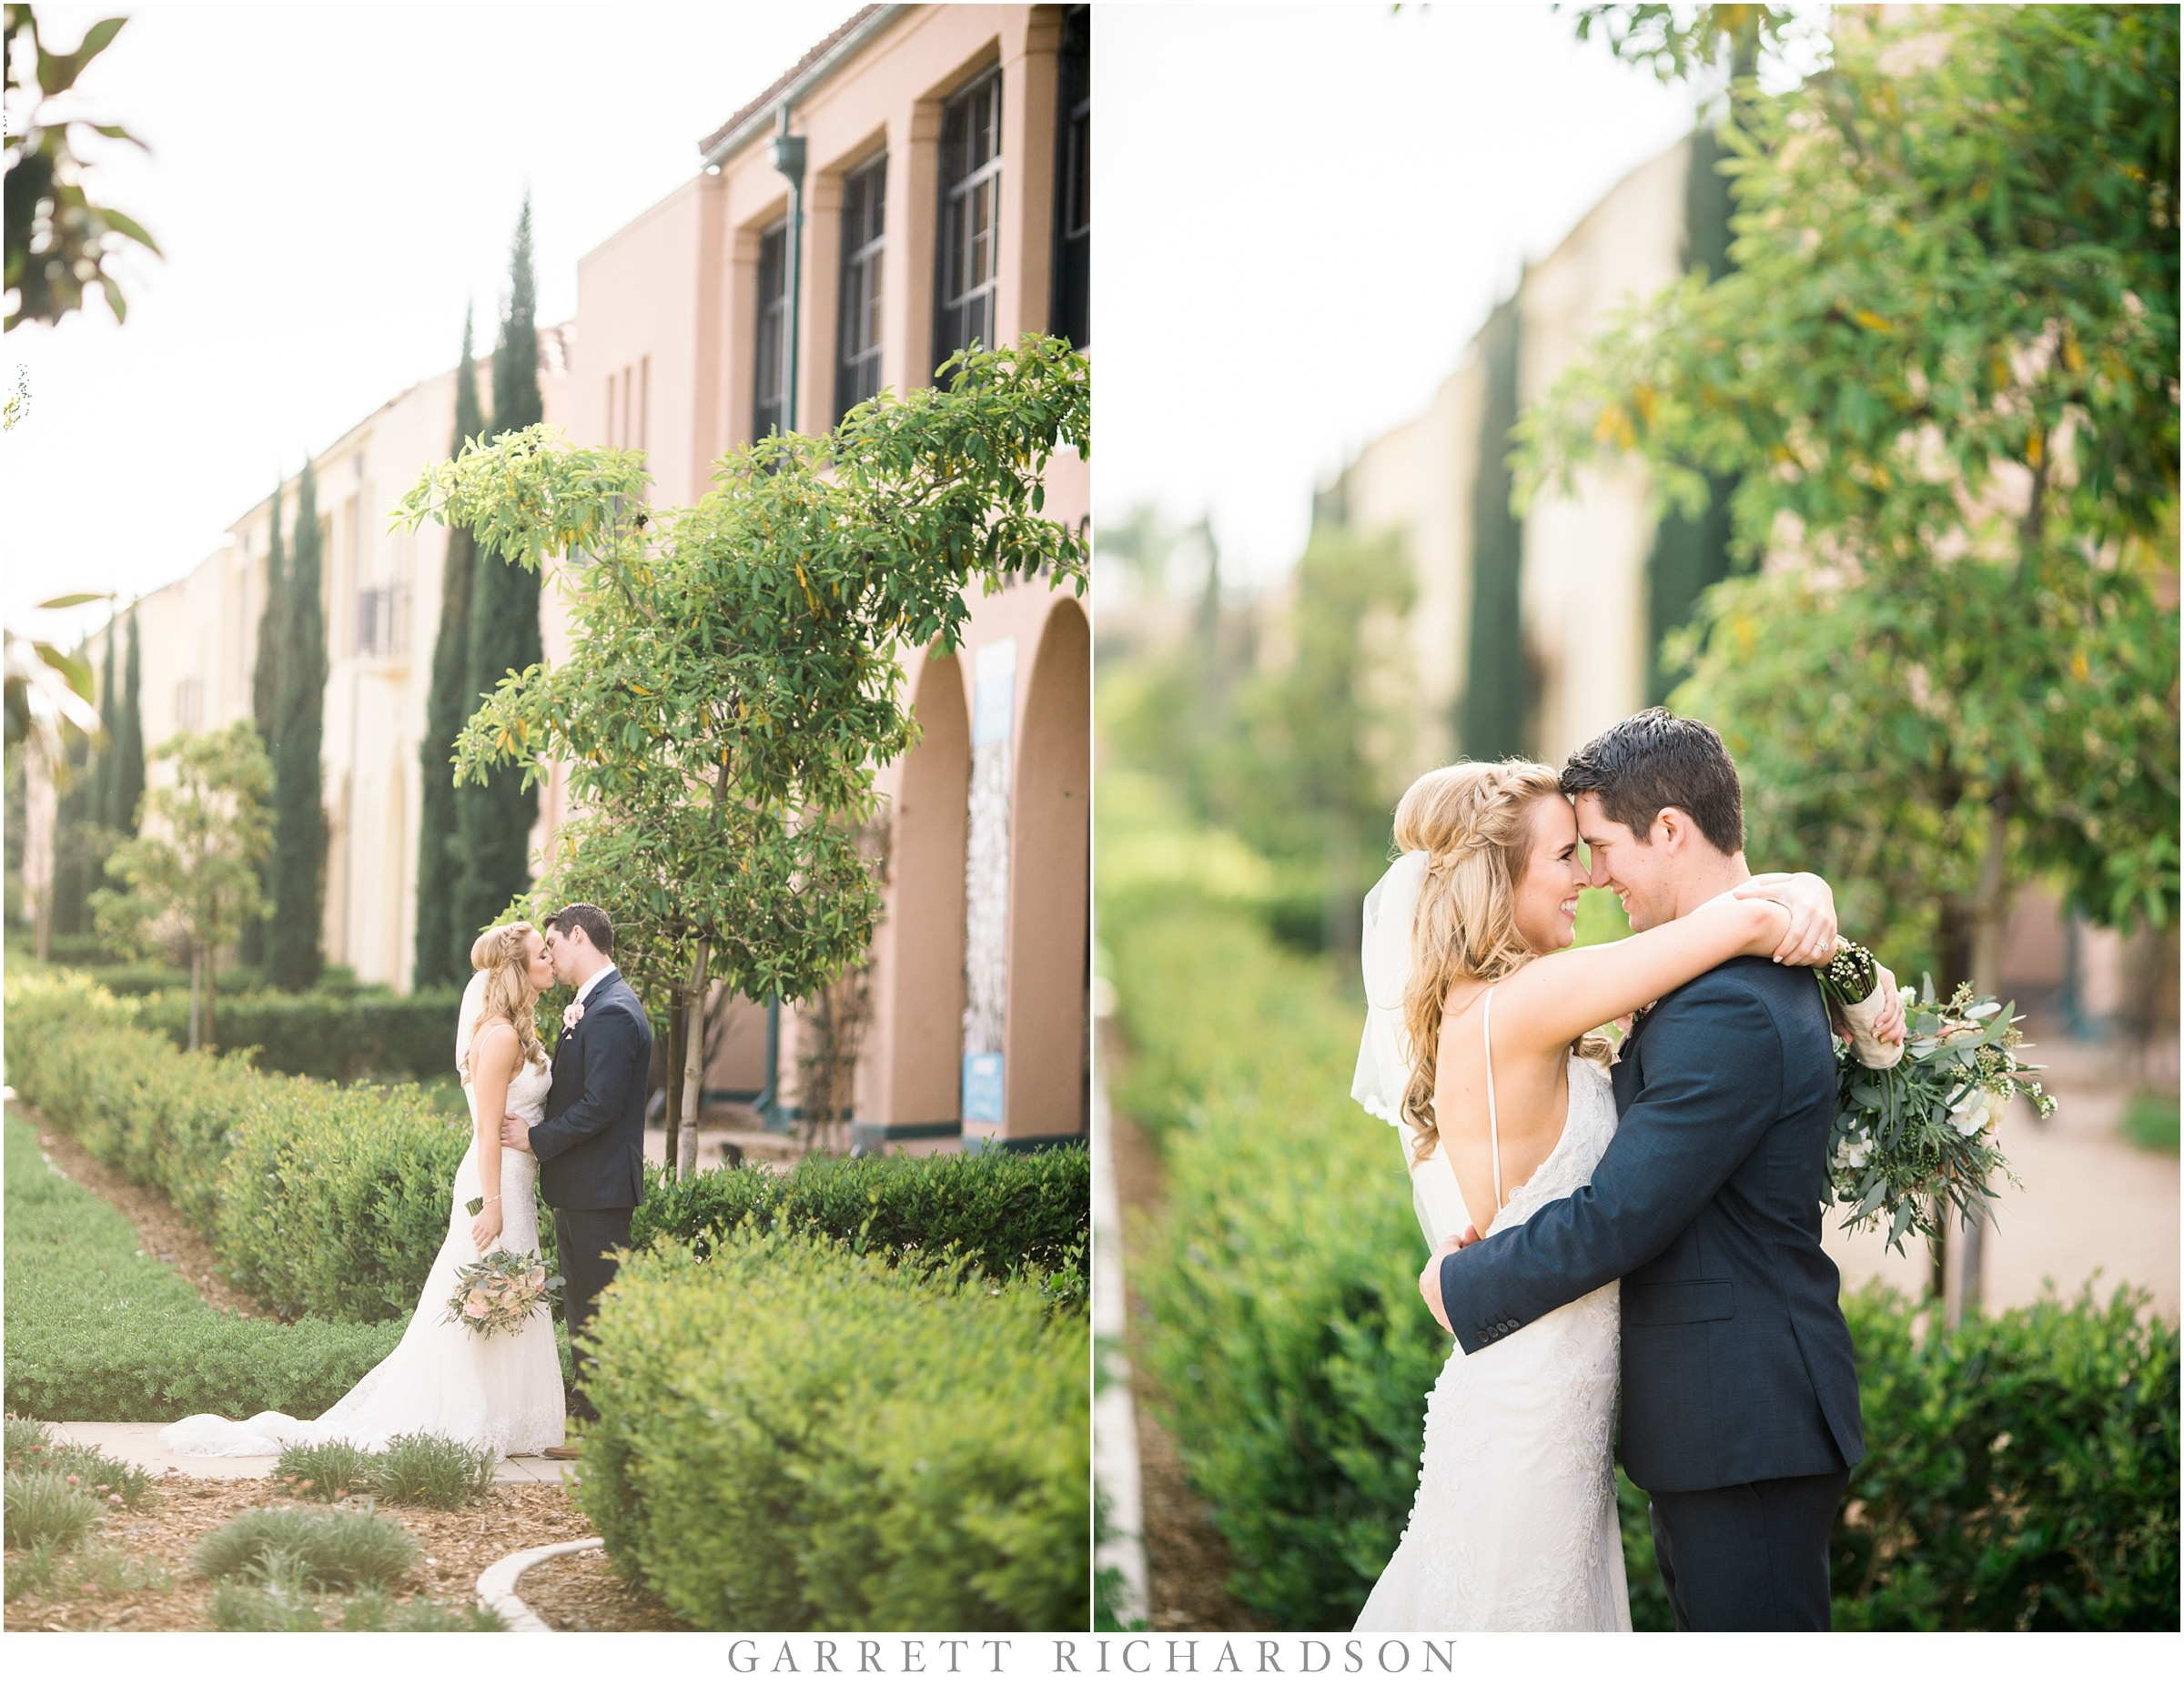 San diego brick wedding ariana brayden garrett richardson san diego wedding san diego ocean wedding wedding southern california bride junglespirit Image collections